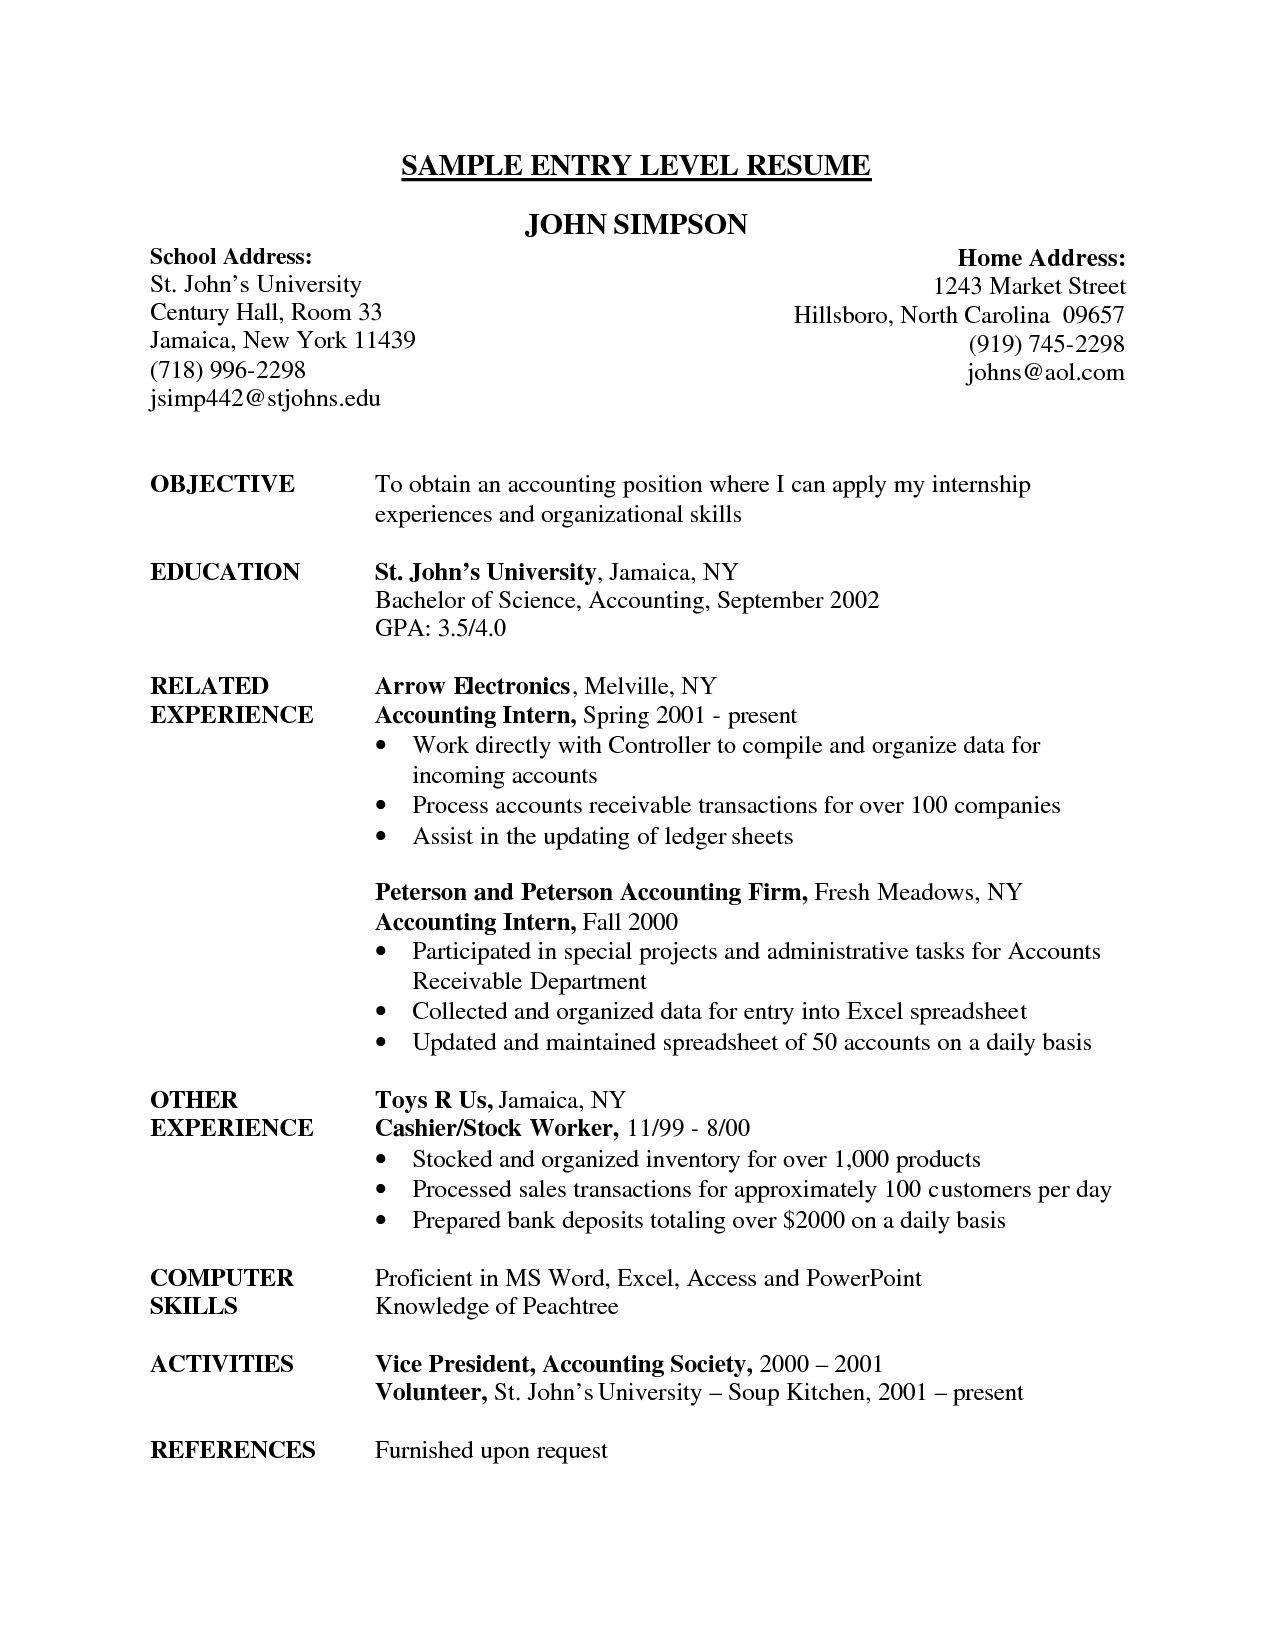 resume Resume Entry Level entry level resume example job examples 26161fd4f 26161fd4f